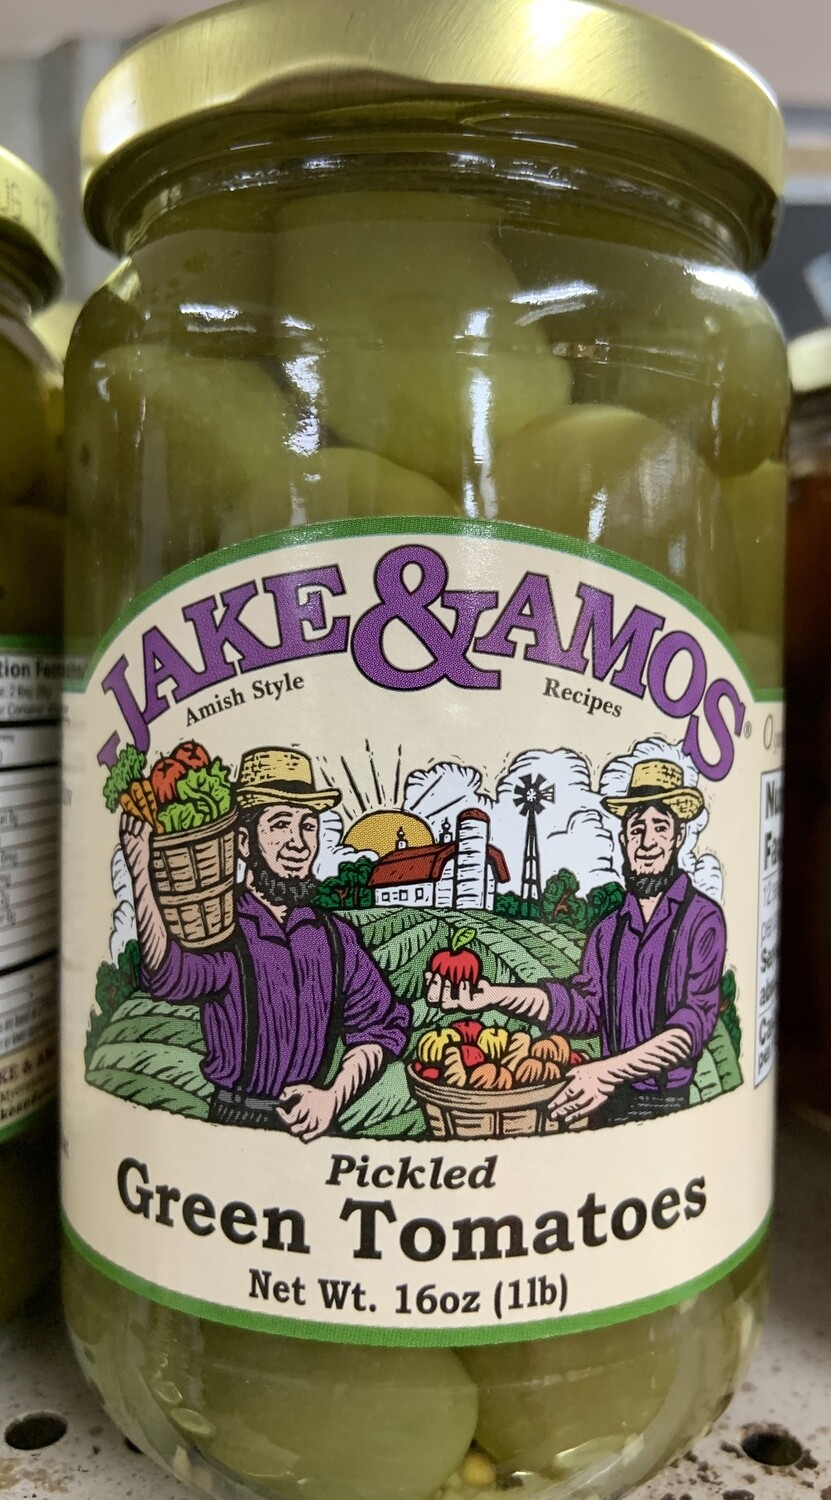 Jake & Amos Pickled Green Tomatoes 16oz